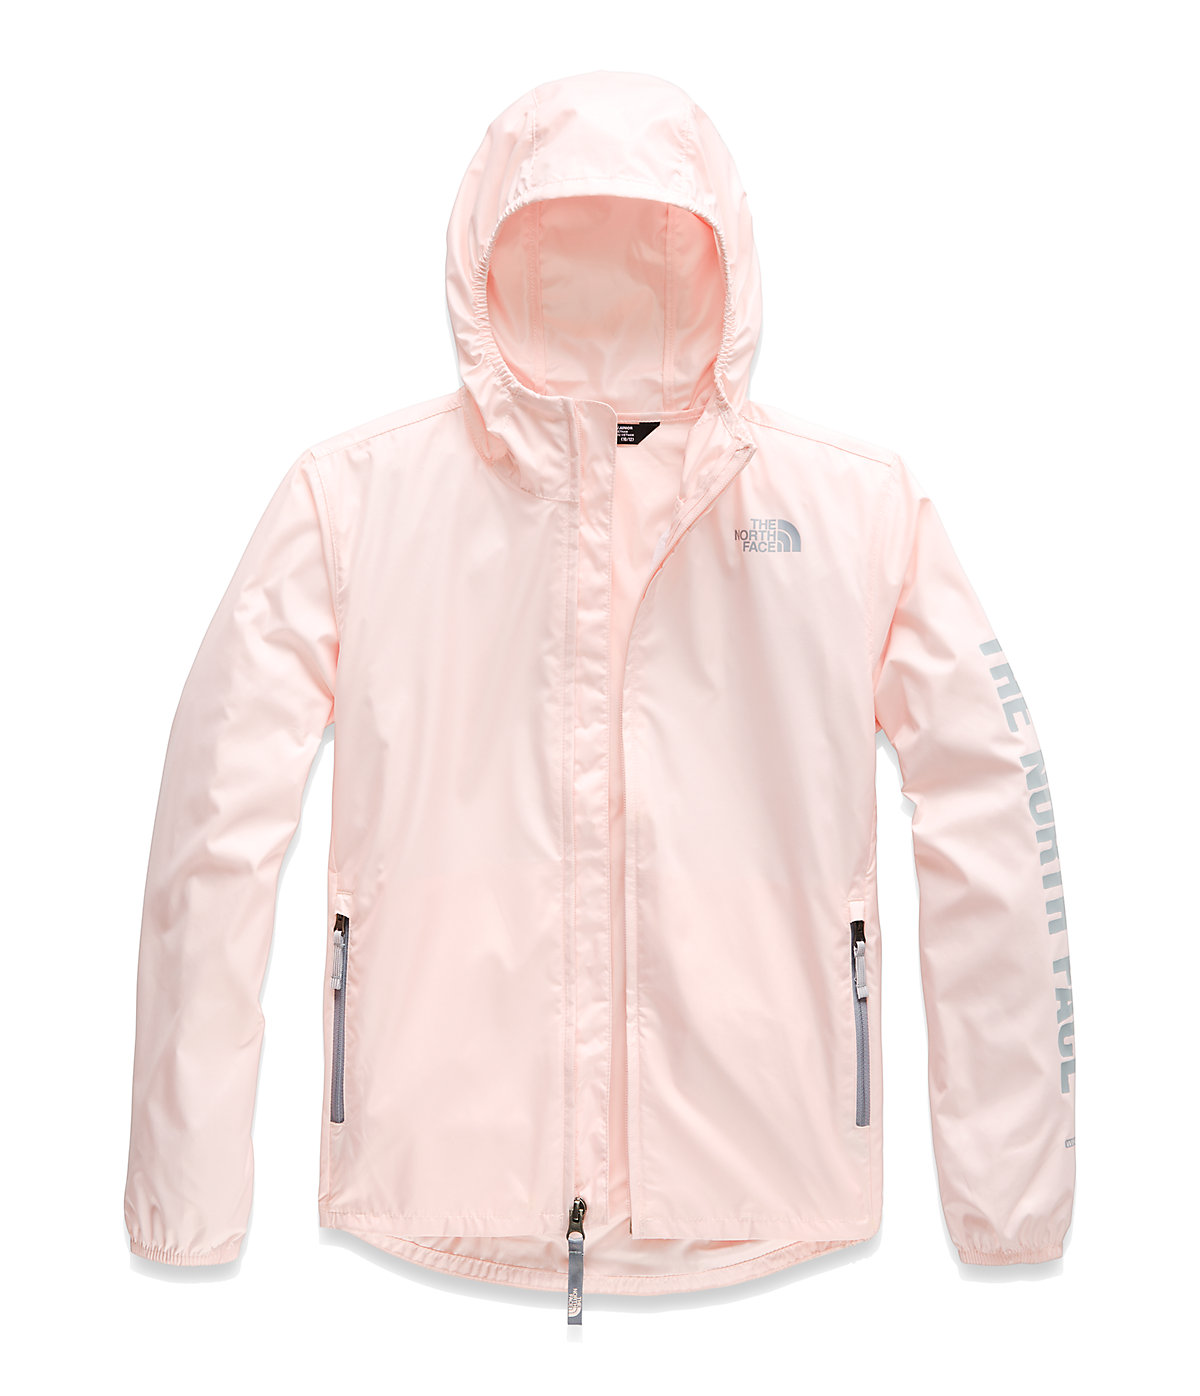 7417de824 The North Face Girls' Kids' Flurry Wind Hoodie Jacket in 2019 ...